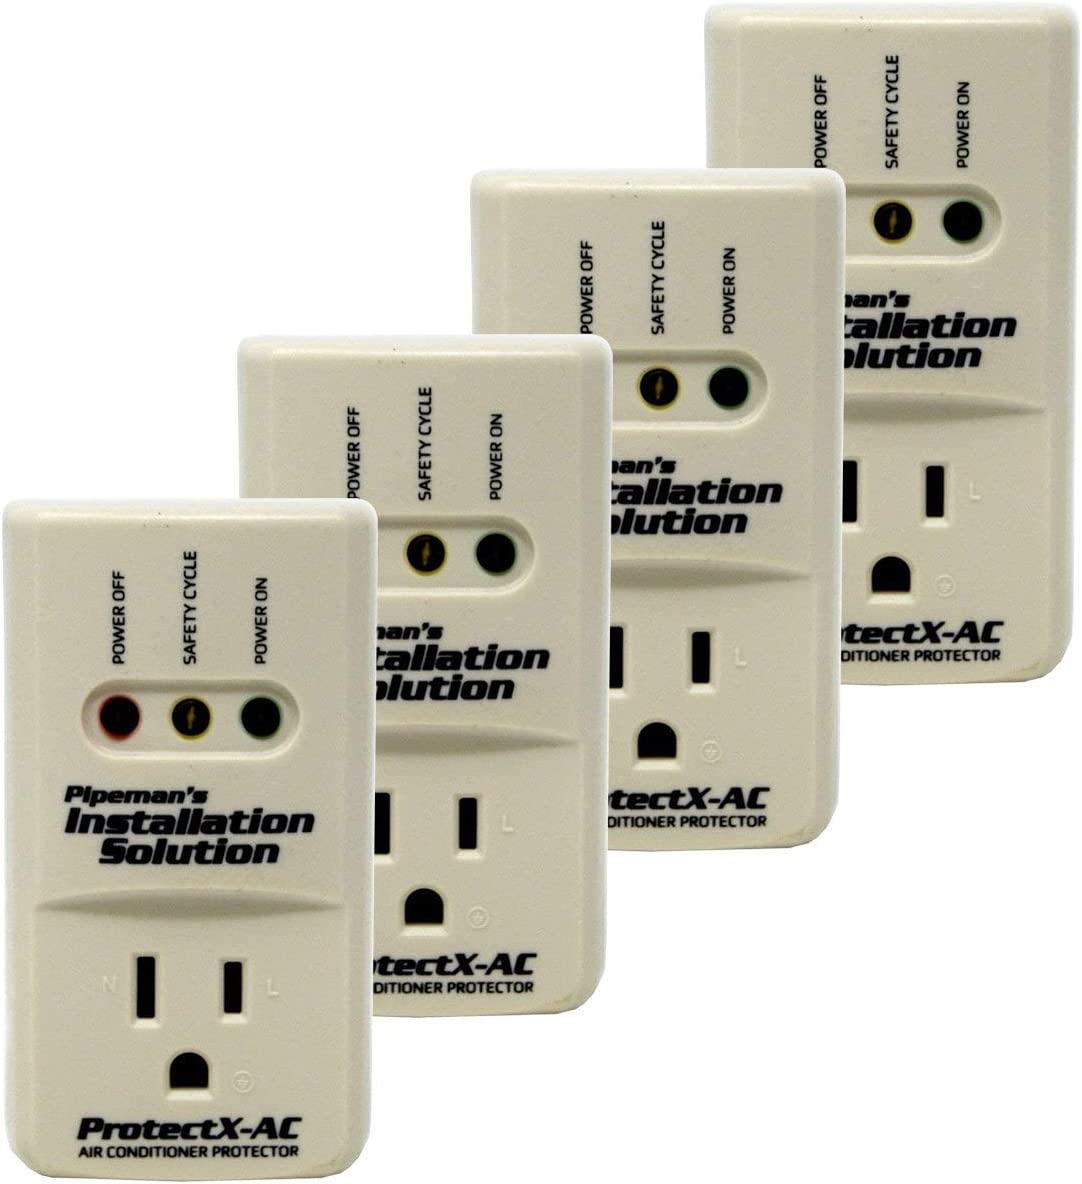 Pipeman's Installation Solution 4-Pack 3600 Watts Air Conditioner Surge Brownout Voltage Protector (New Model)